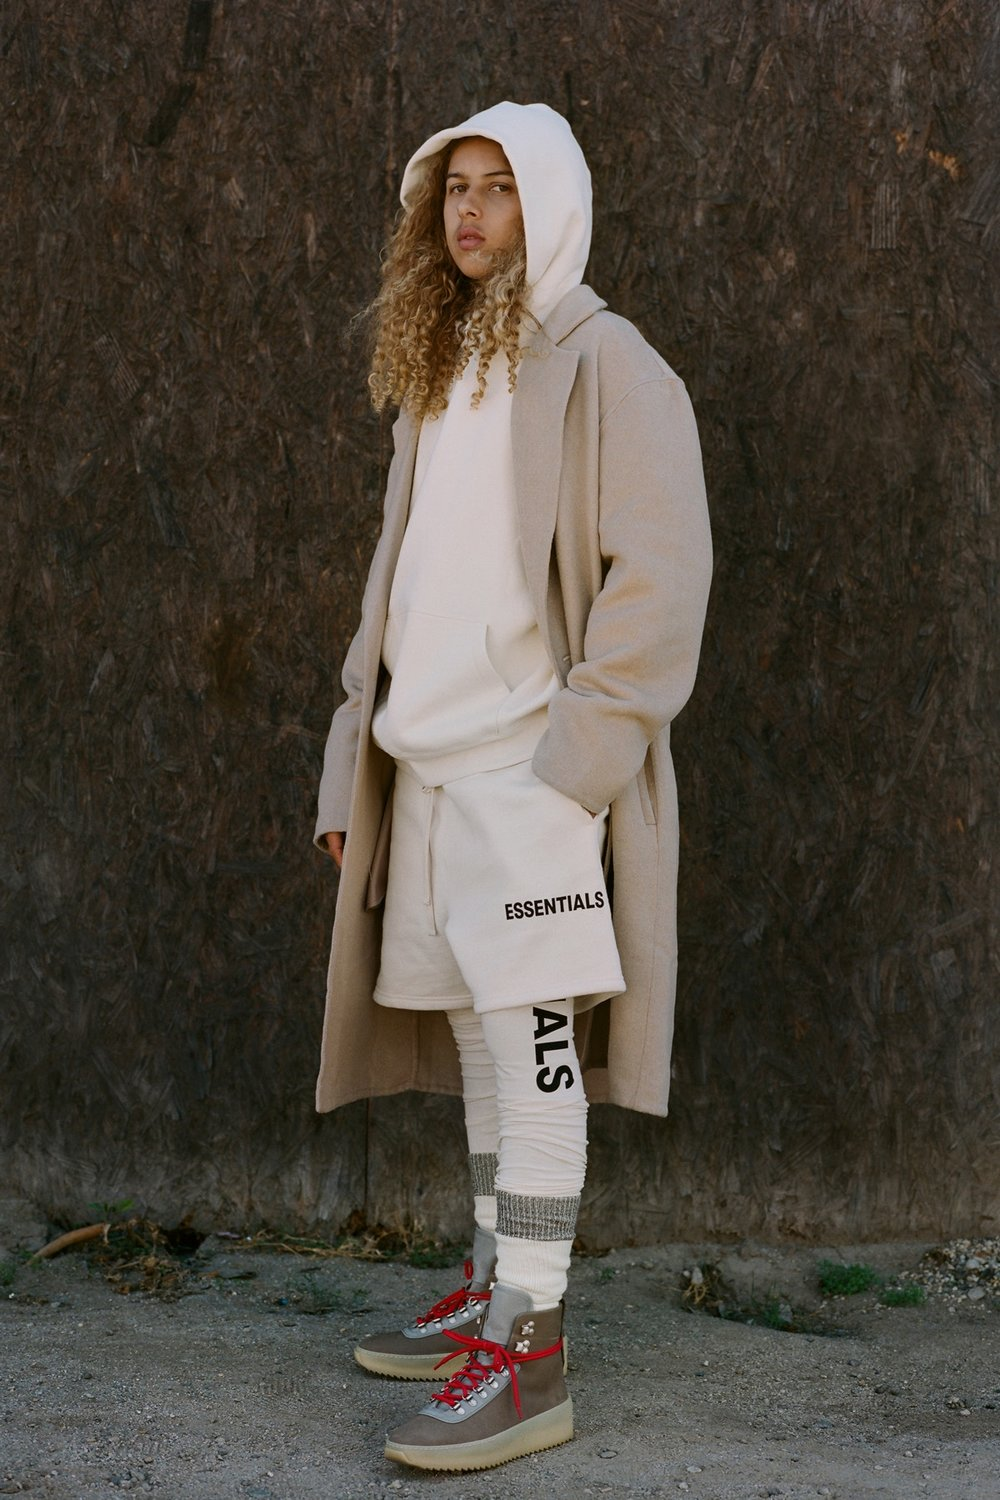 fear-of-god-essentials-collection-22.jpg